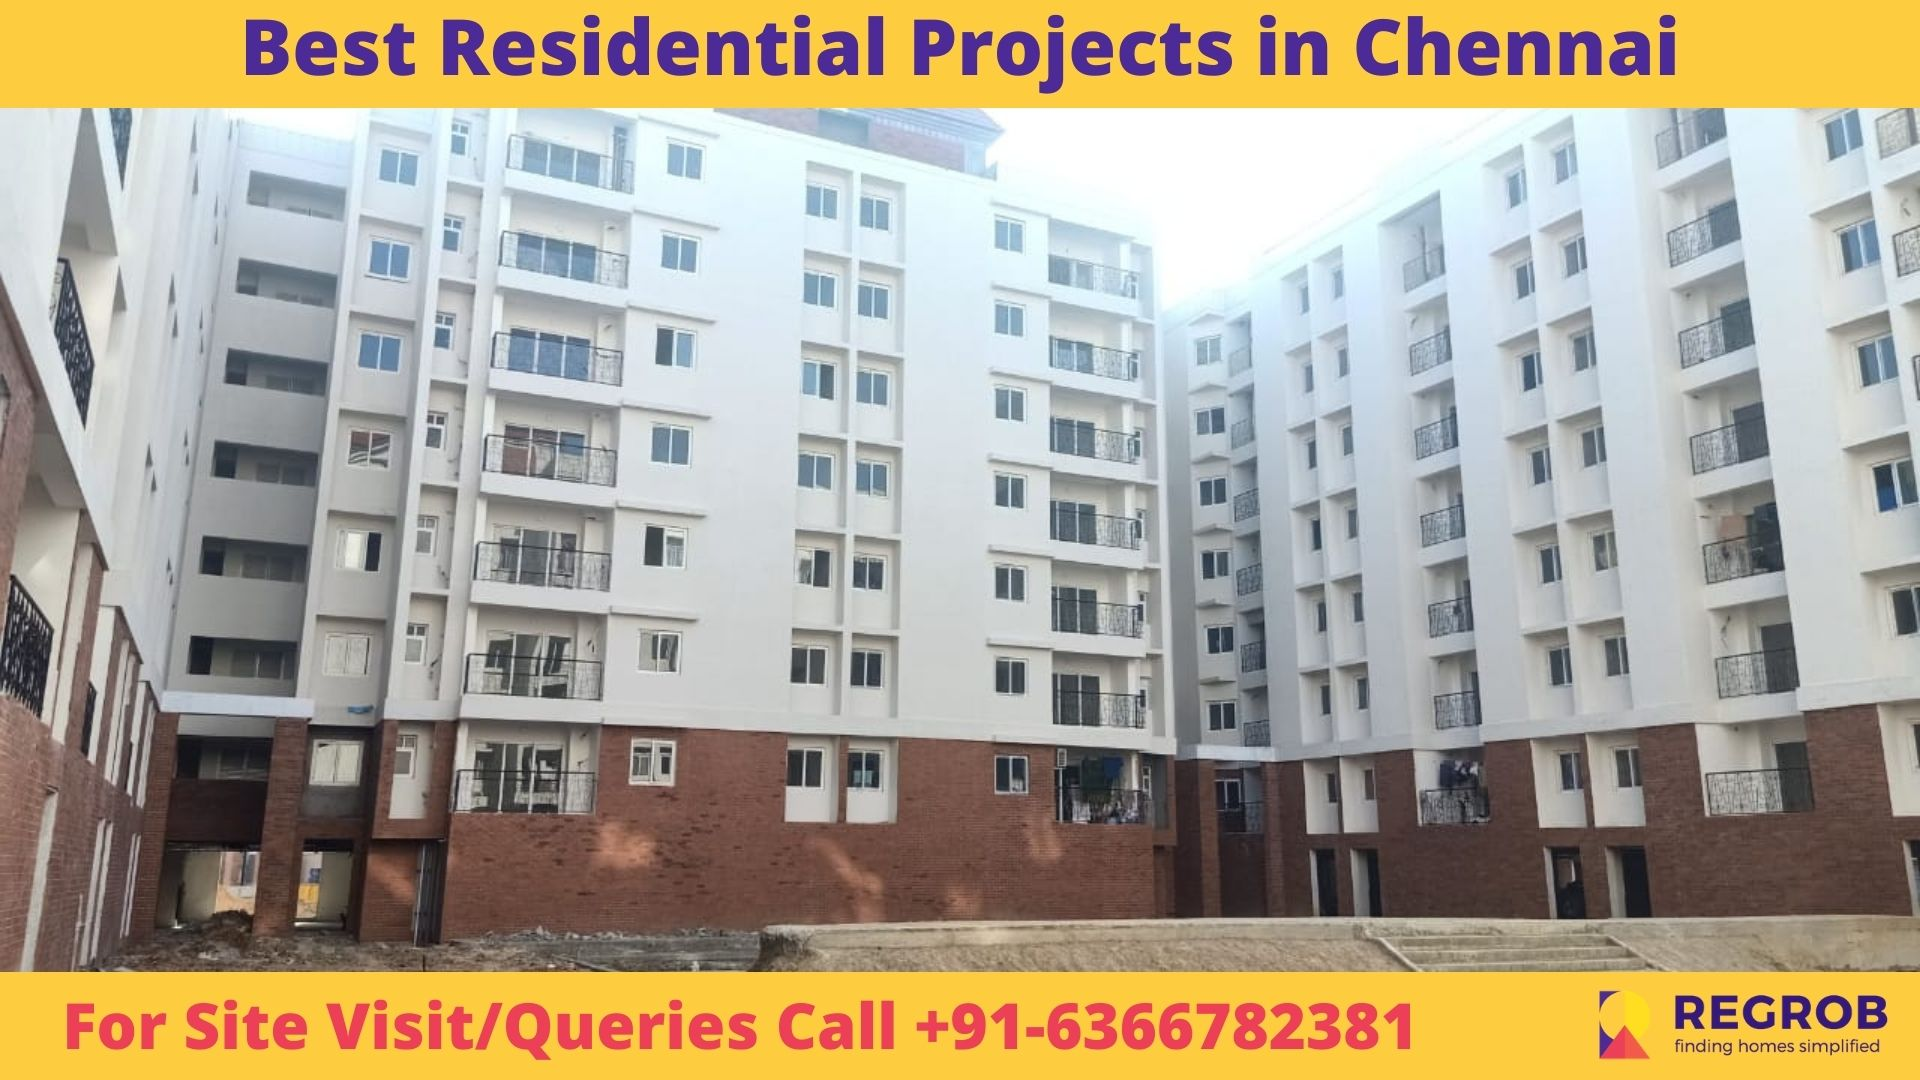 Best Residential Projects in Chennai